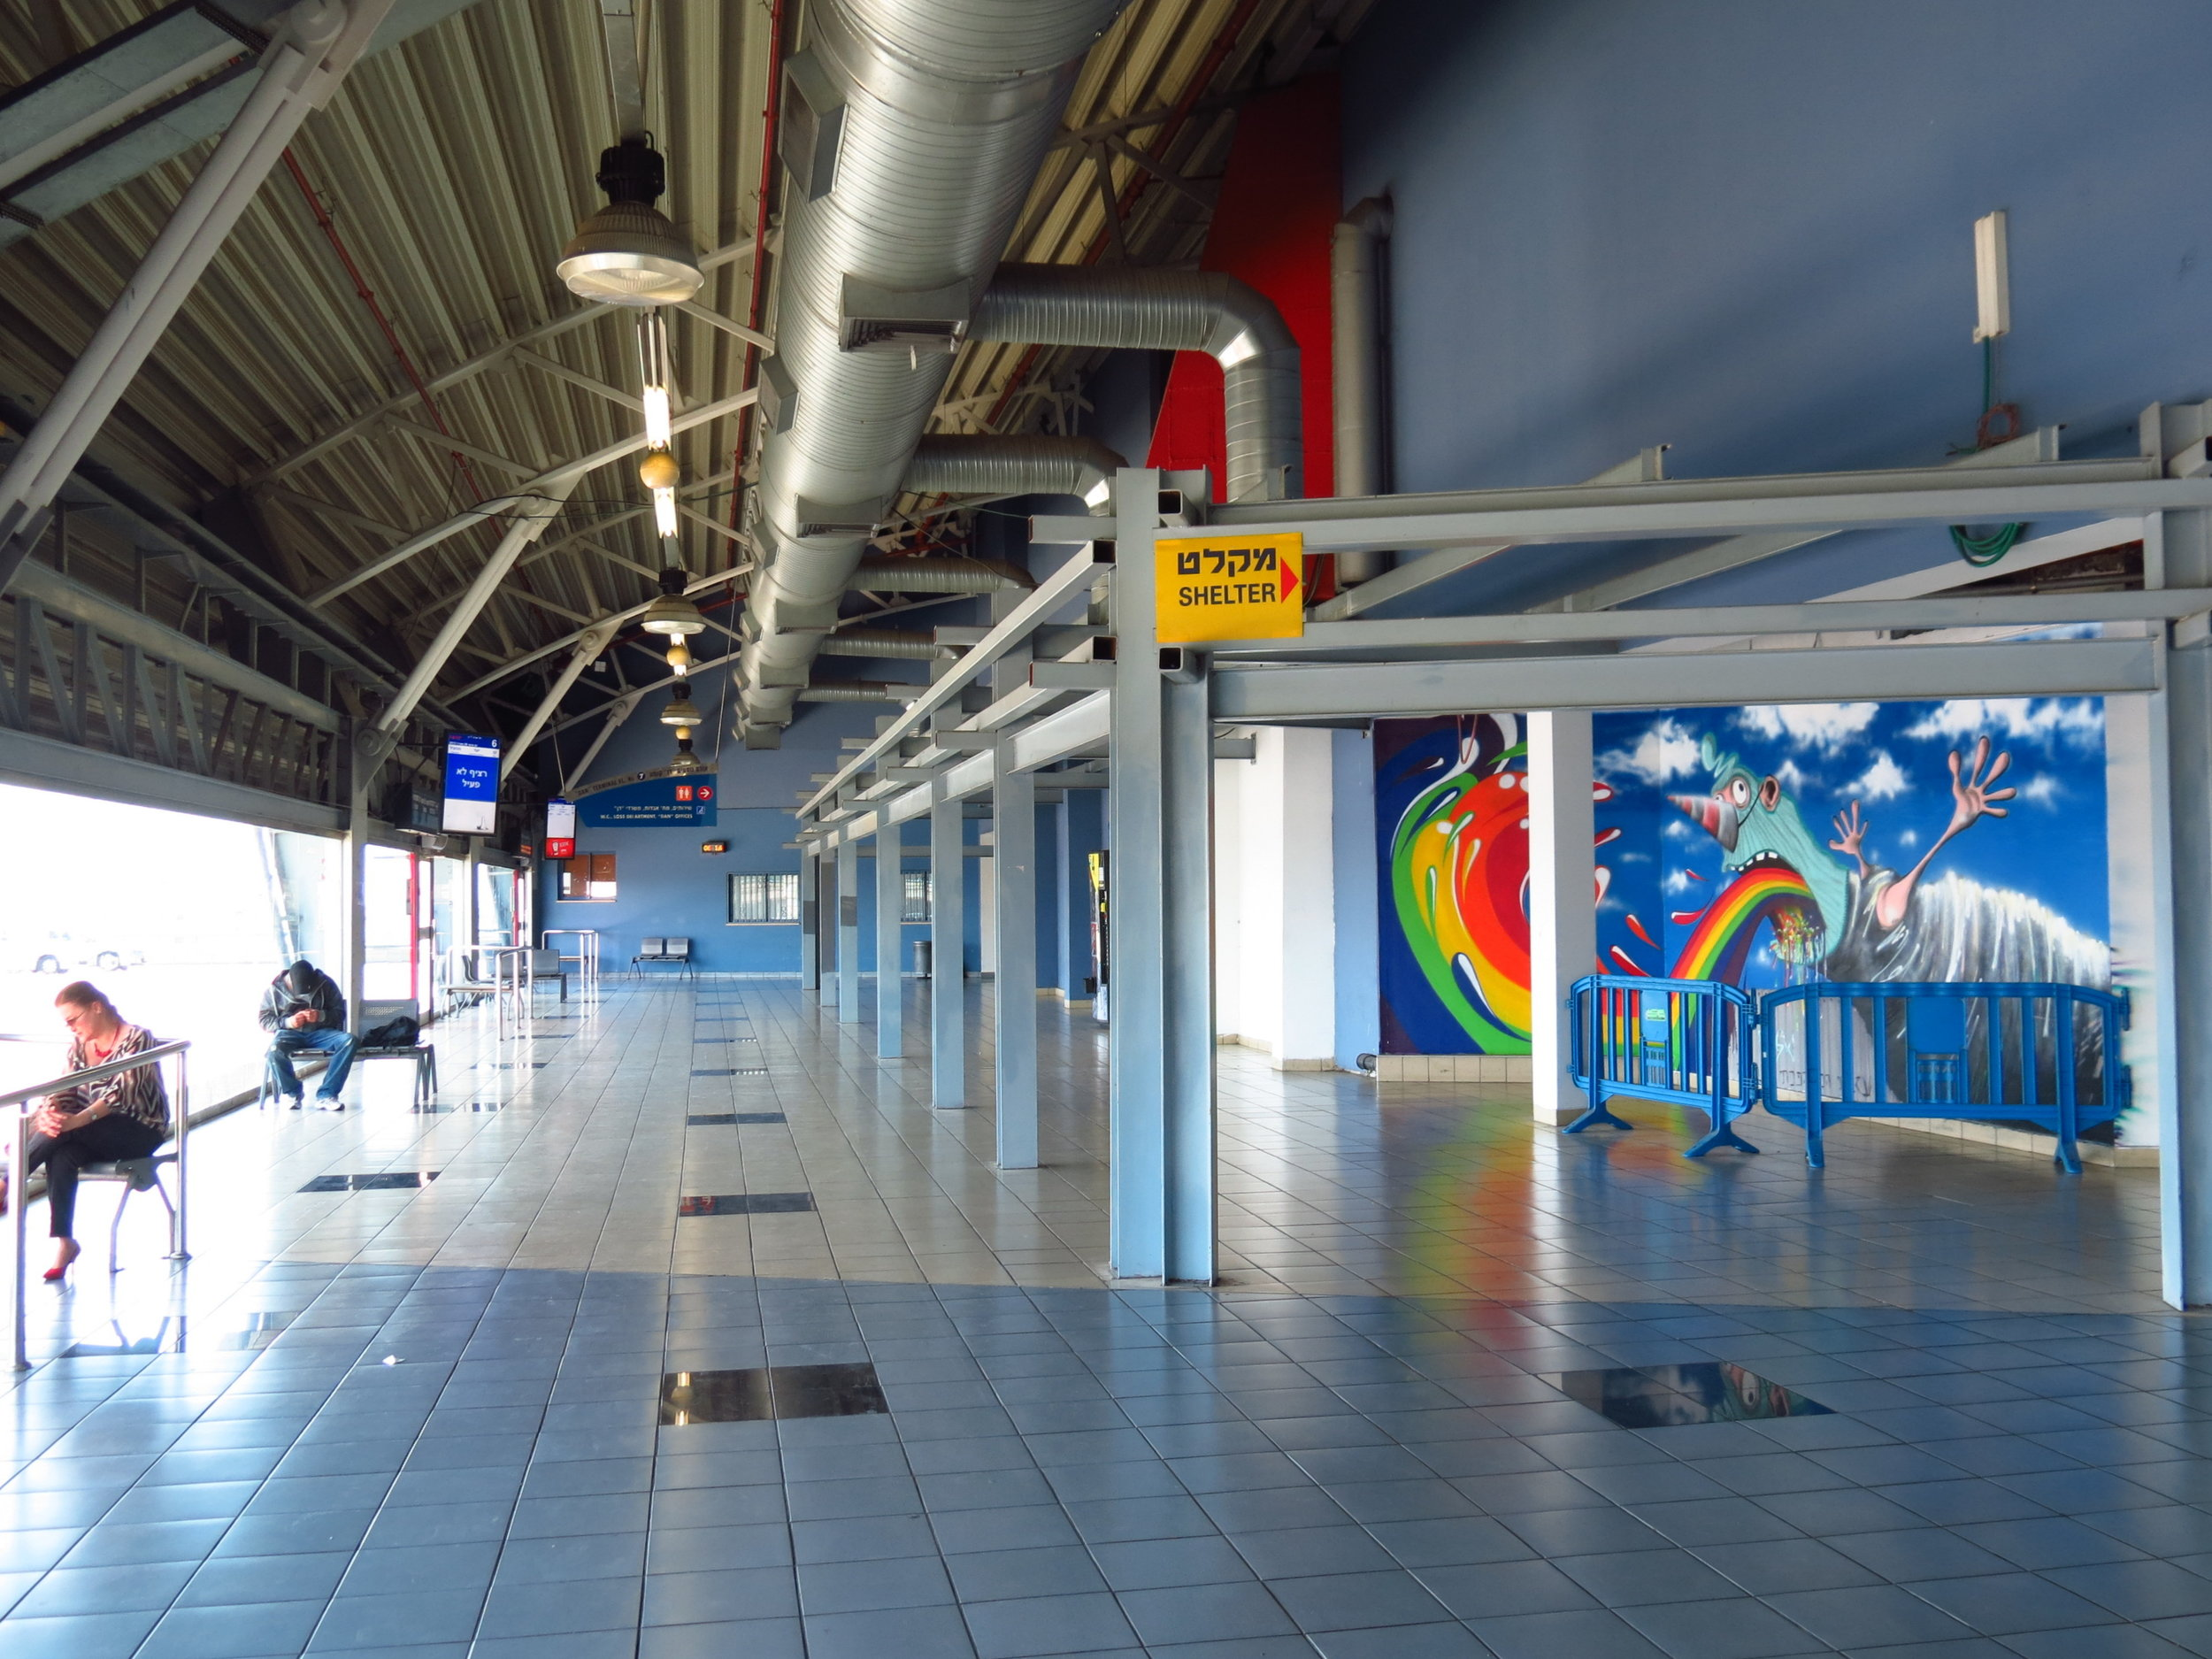 Street art on the station's 7th floor- pic: Mati Ale